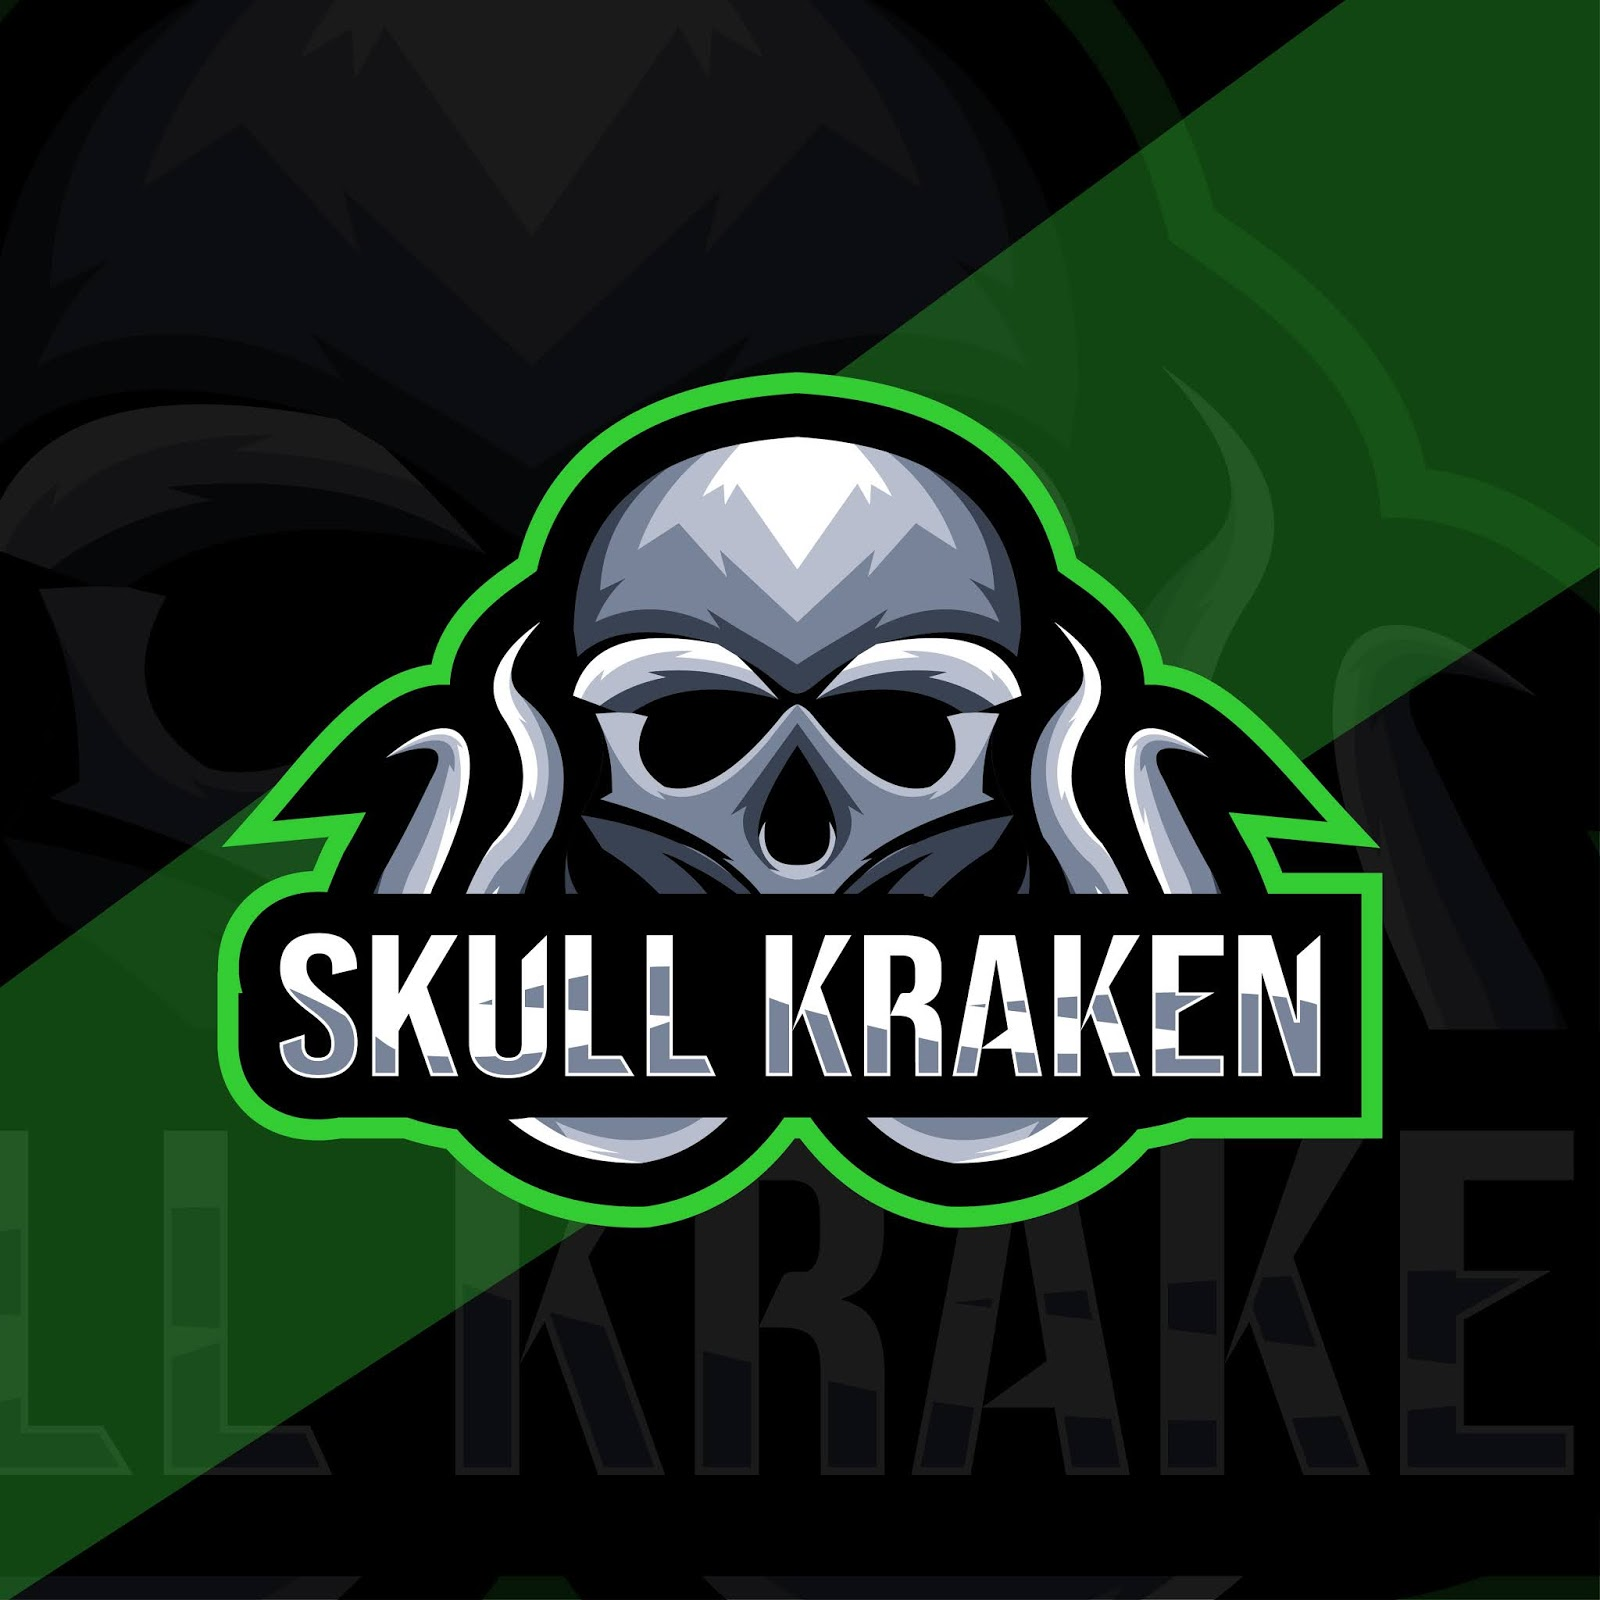 Skull Kraken Mascot Logo Template Free Download Vector CDR, AI, EPS and PNG Formats